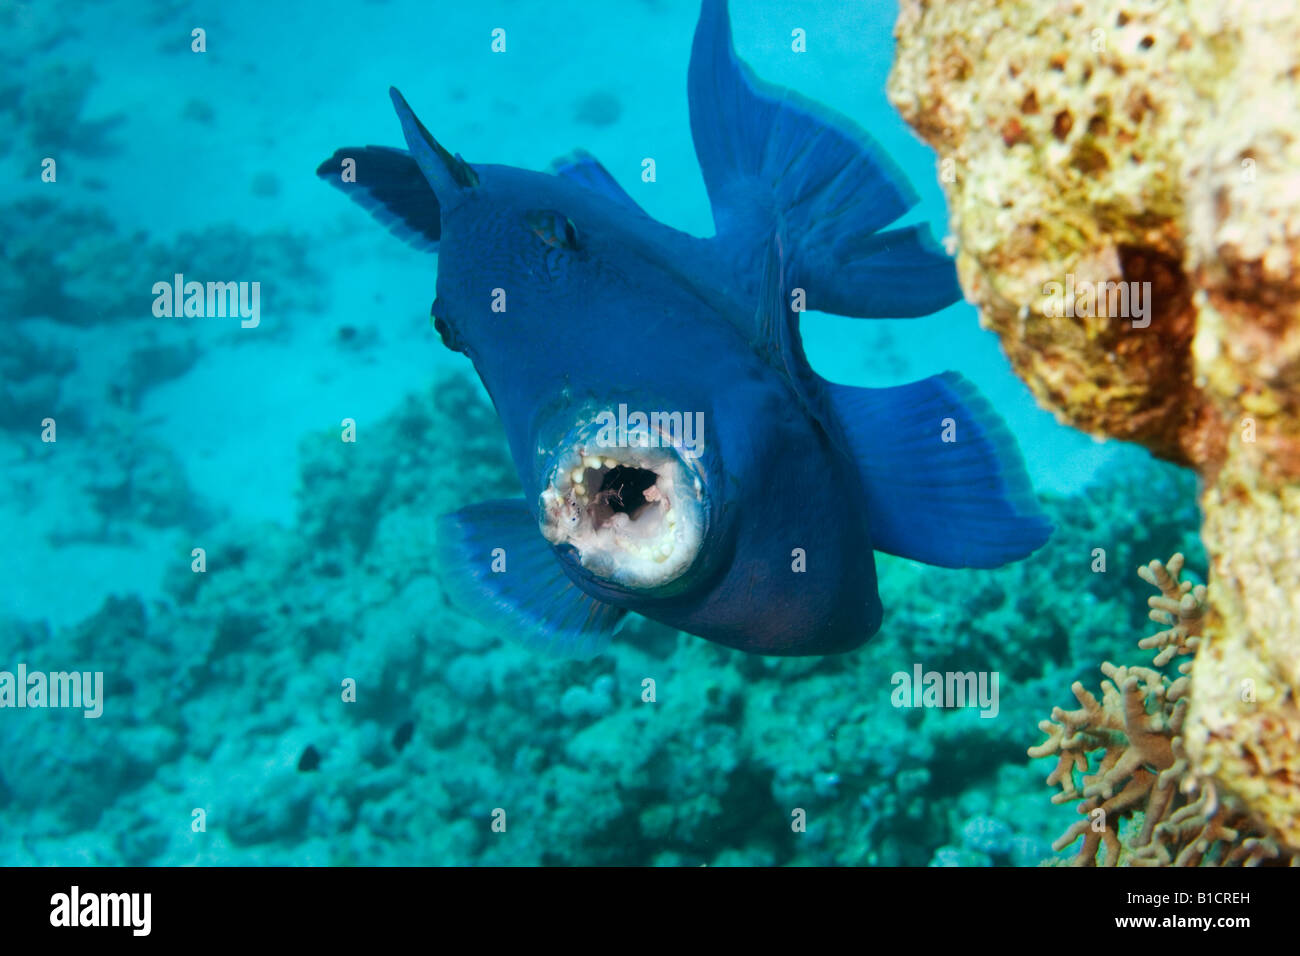 A Blue Trigger Fish on a reef near Sharm El Sheikh, Red Sea, Egypt - Stock Image